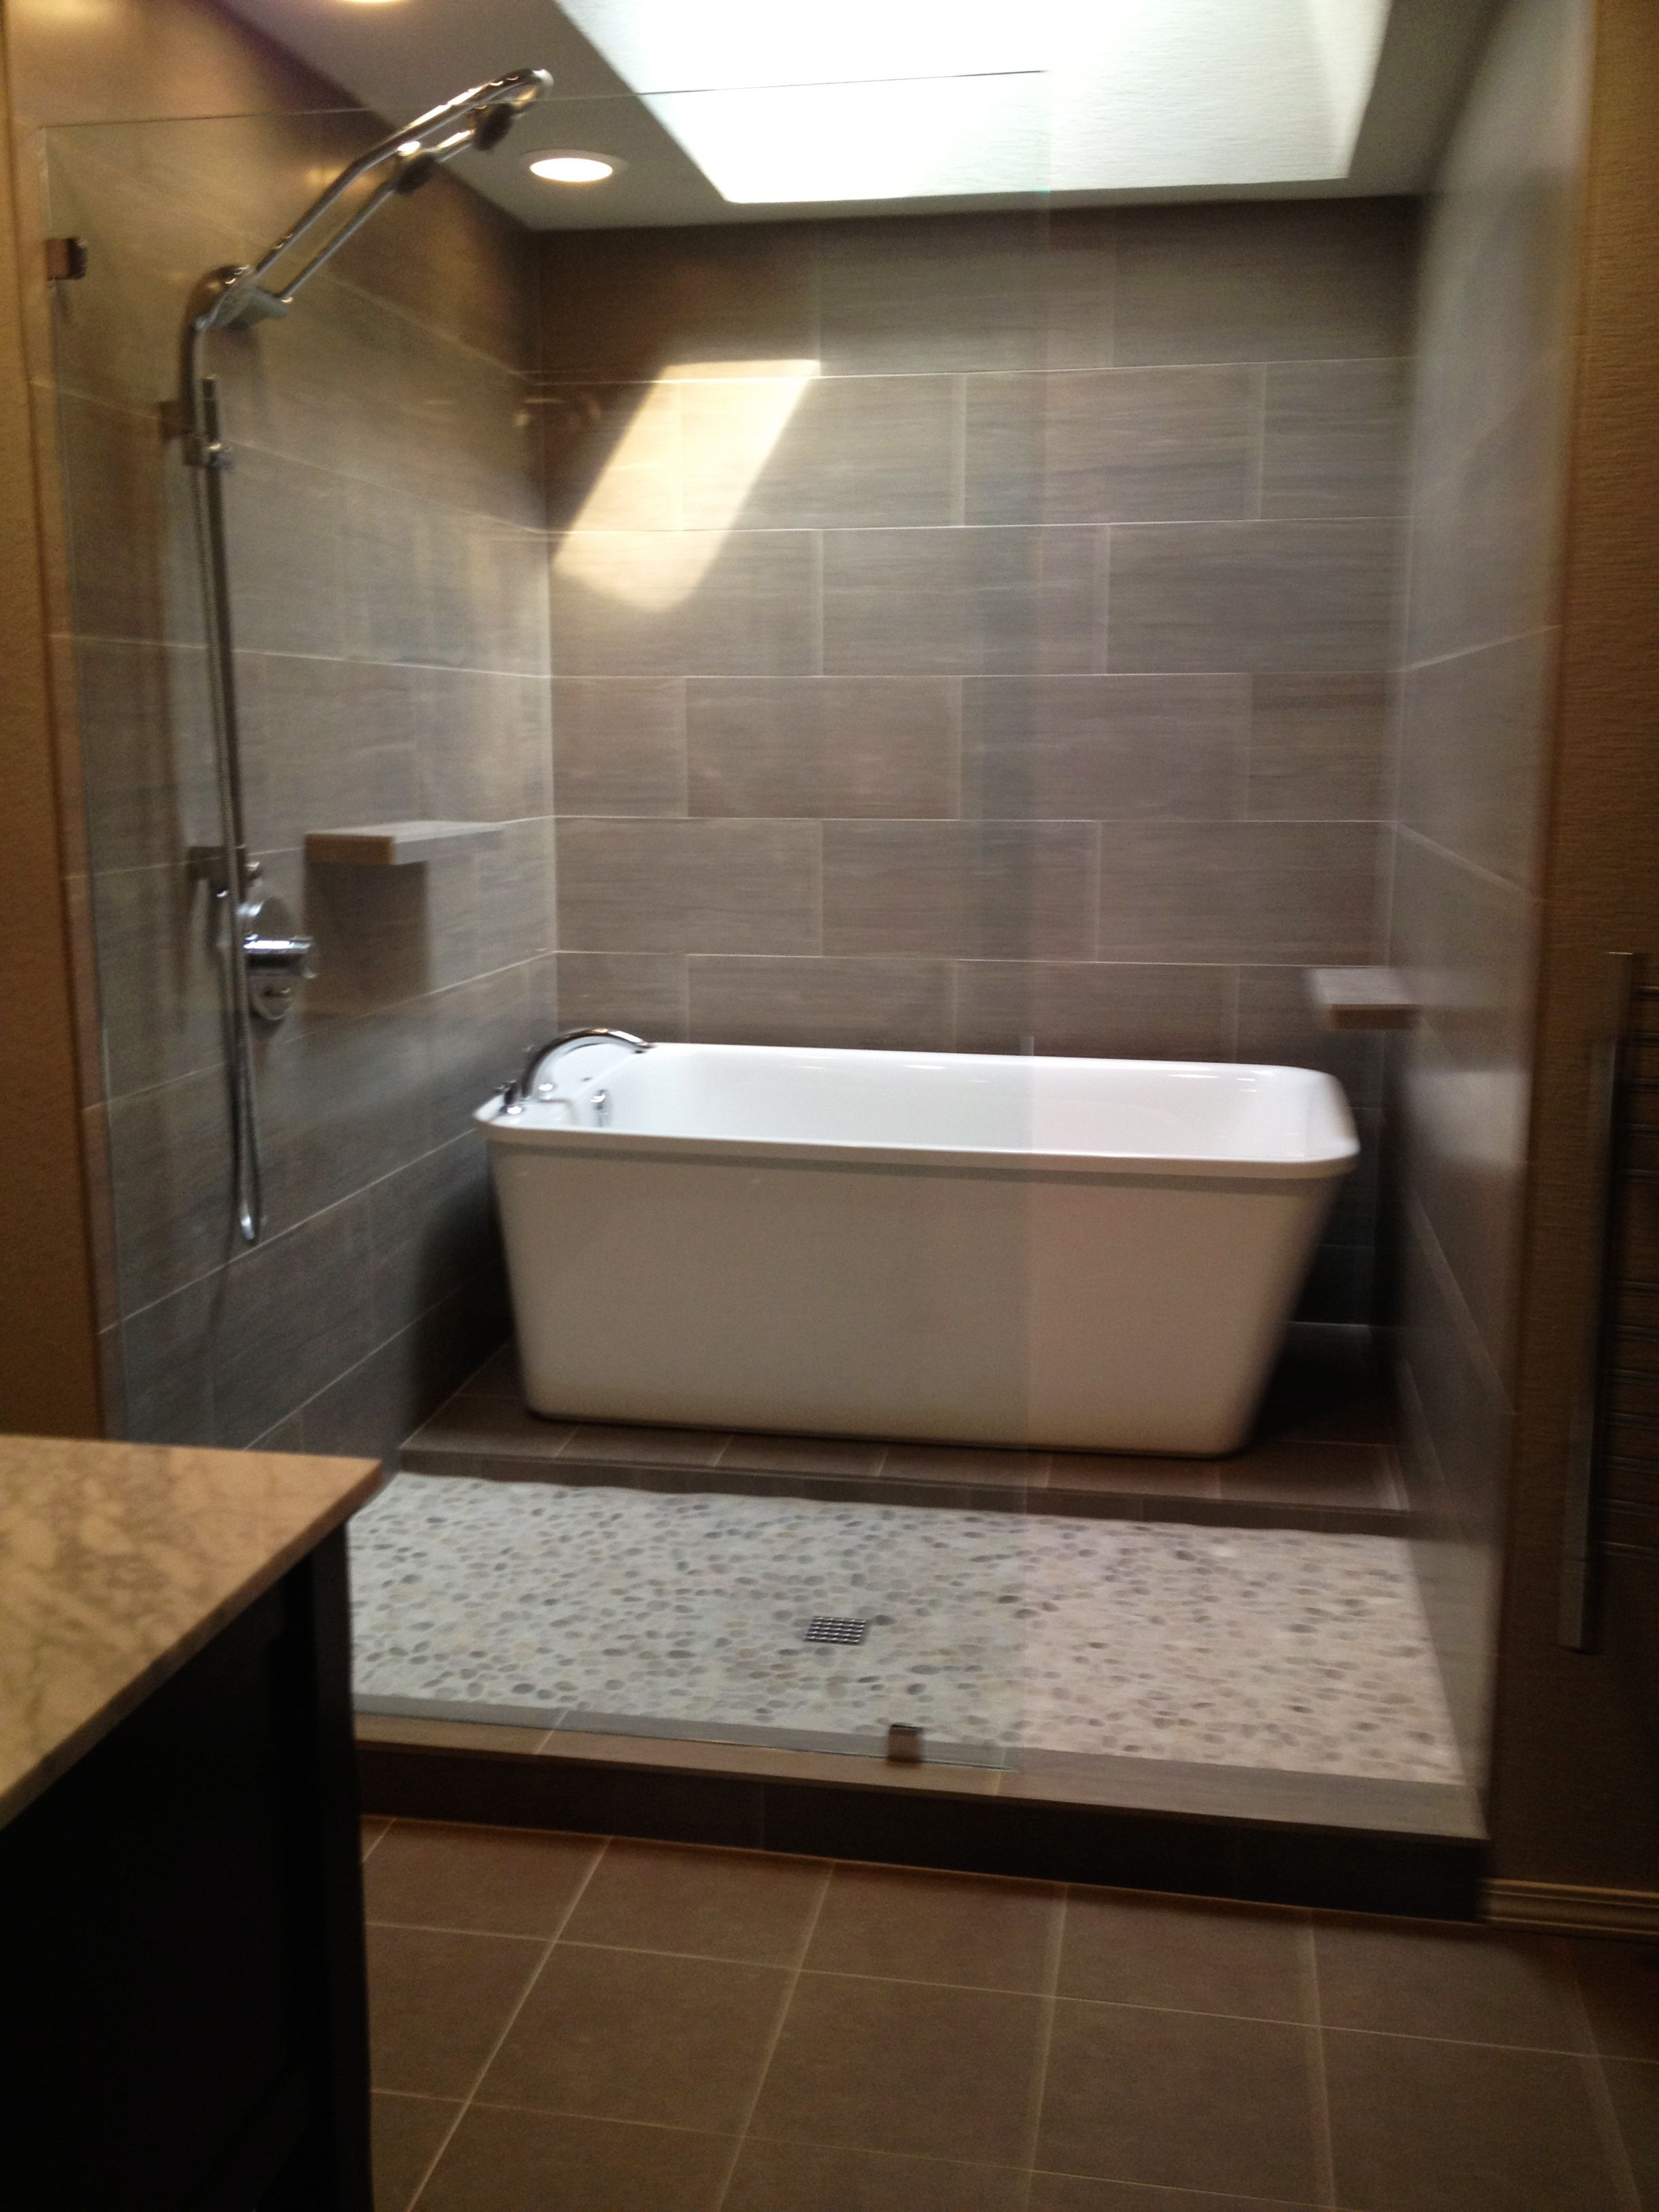 Bathroom Remodeling Fort Worth artec group, inc. interior design and remodeling - bathroom